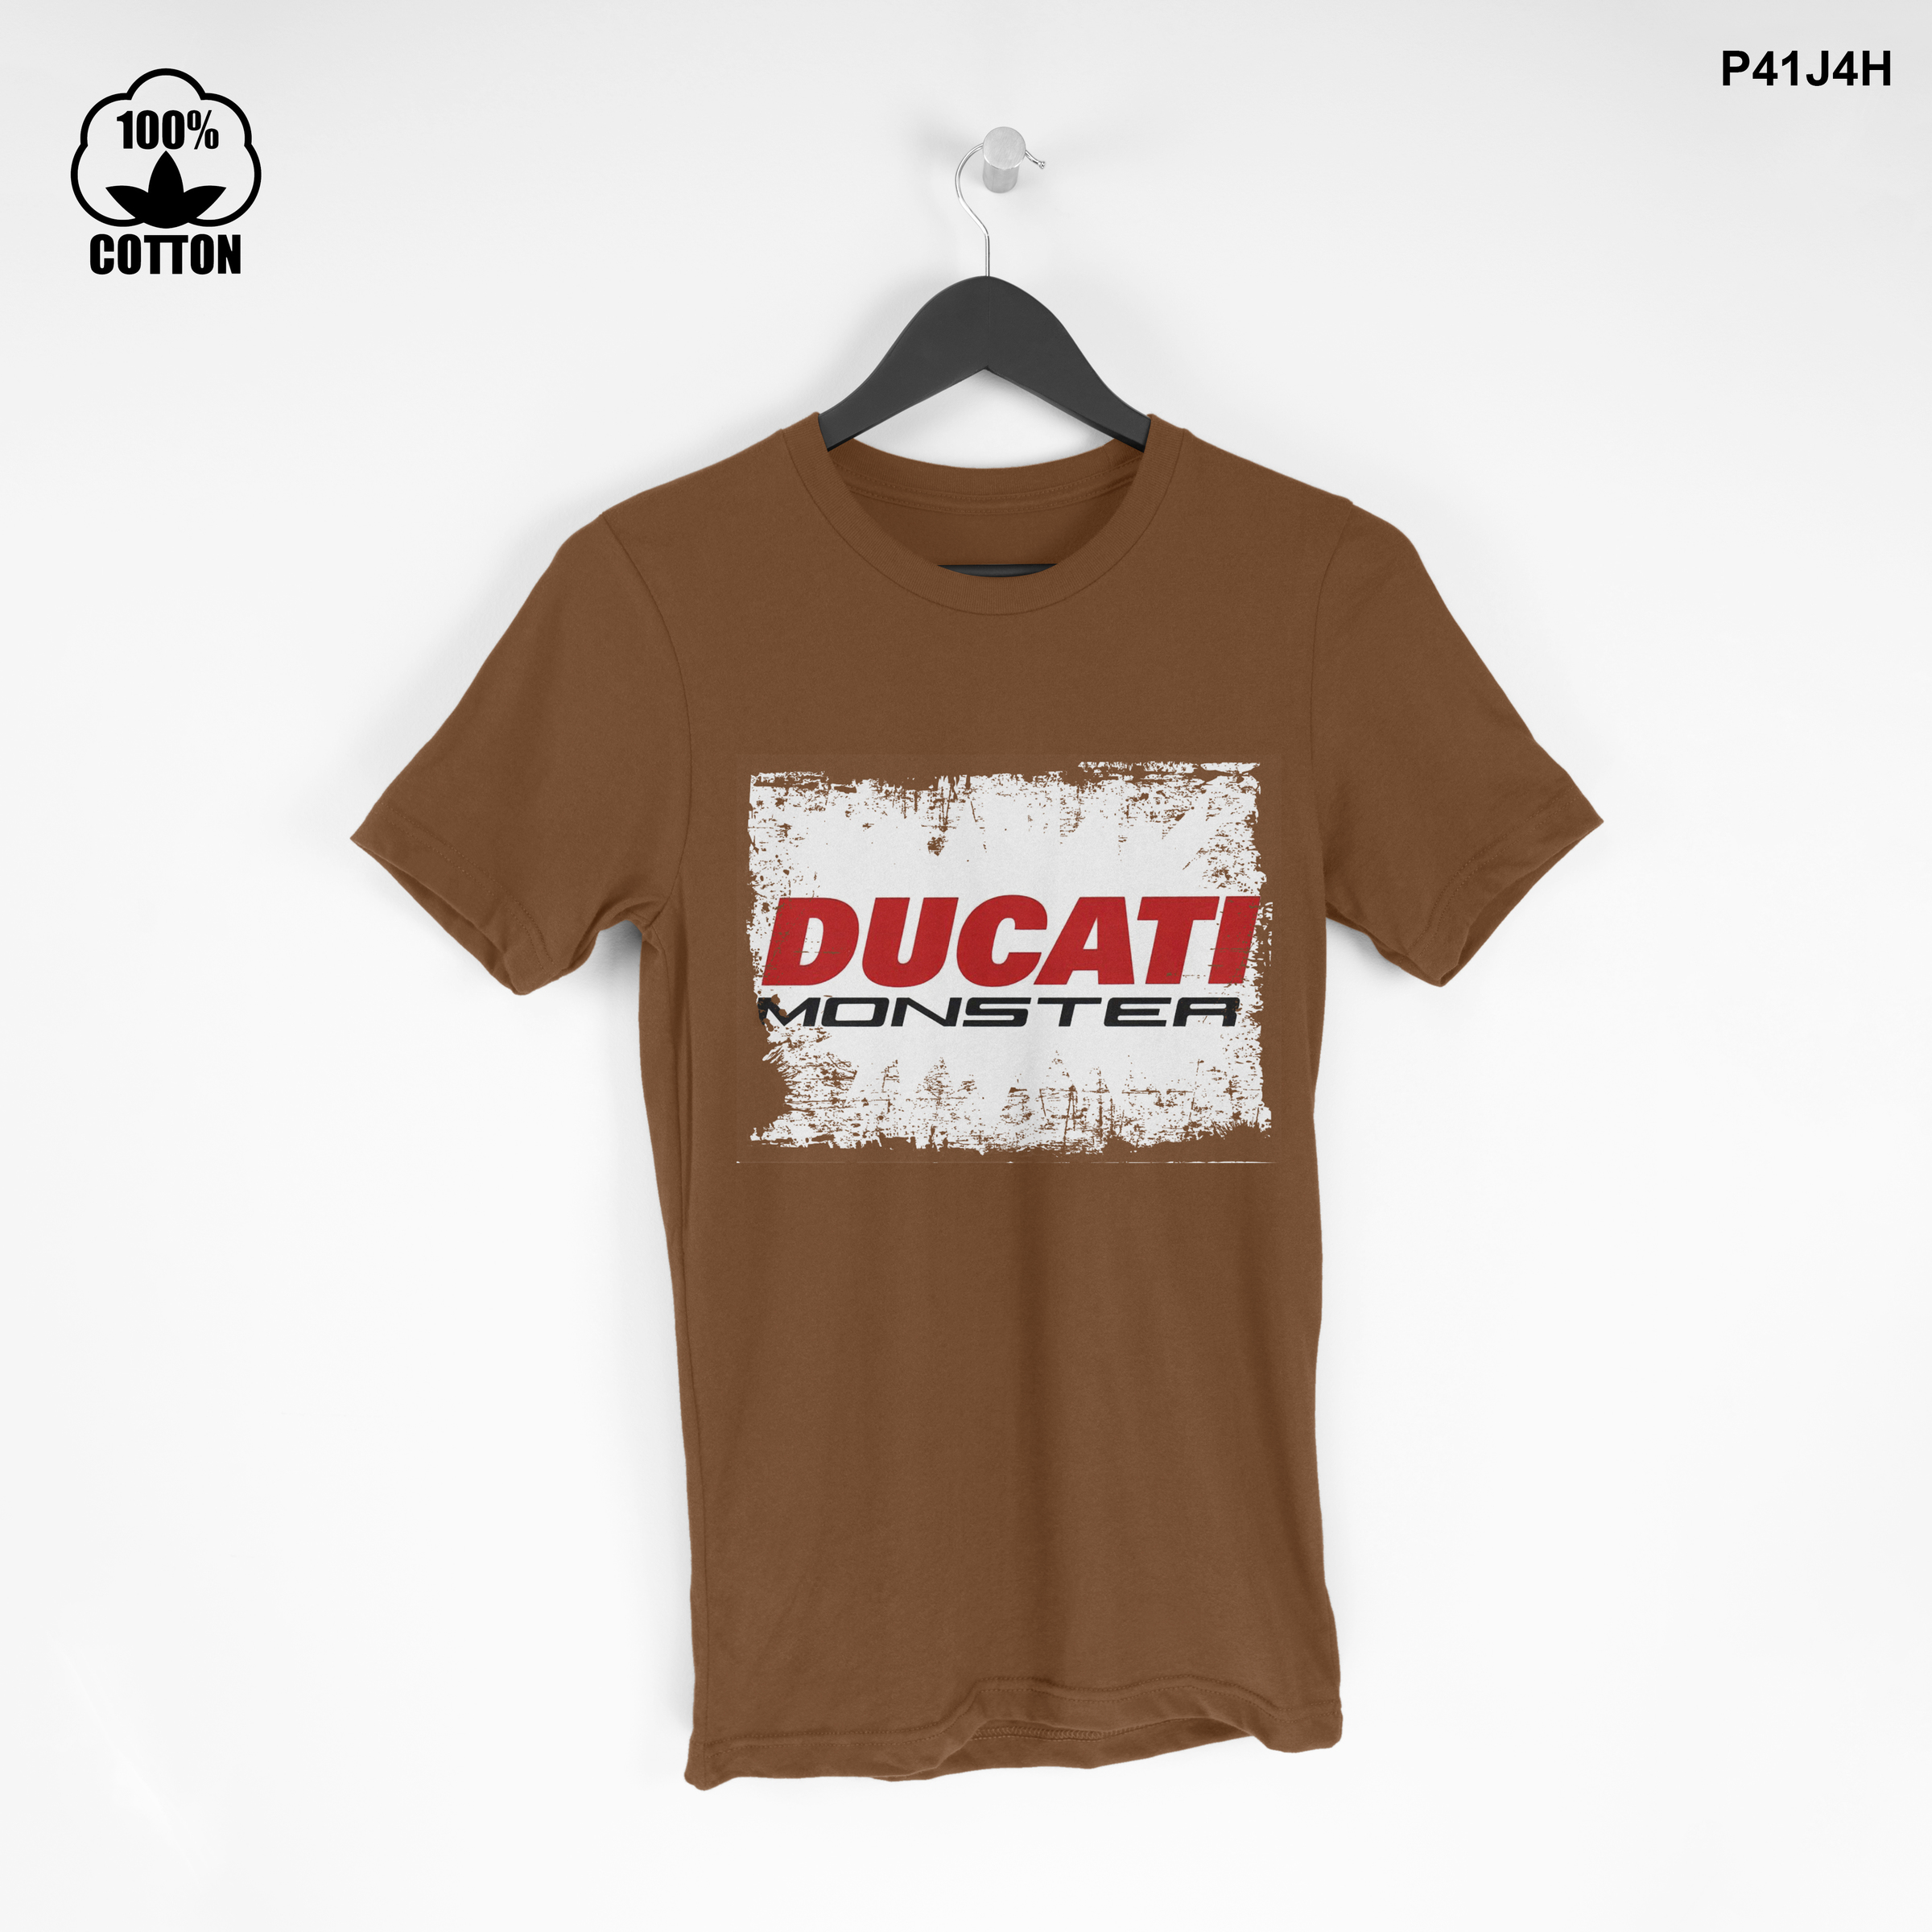 LIMITED EDITION!! Ducati Monster T Shirt Tee Men's Saddle Brown.jpg